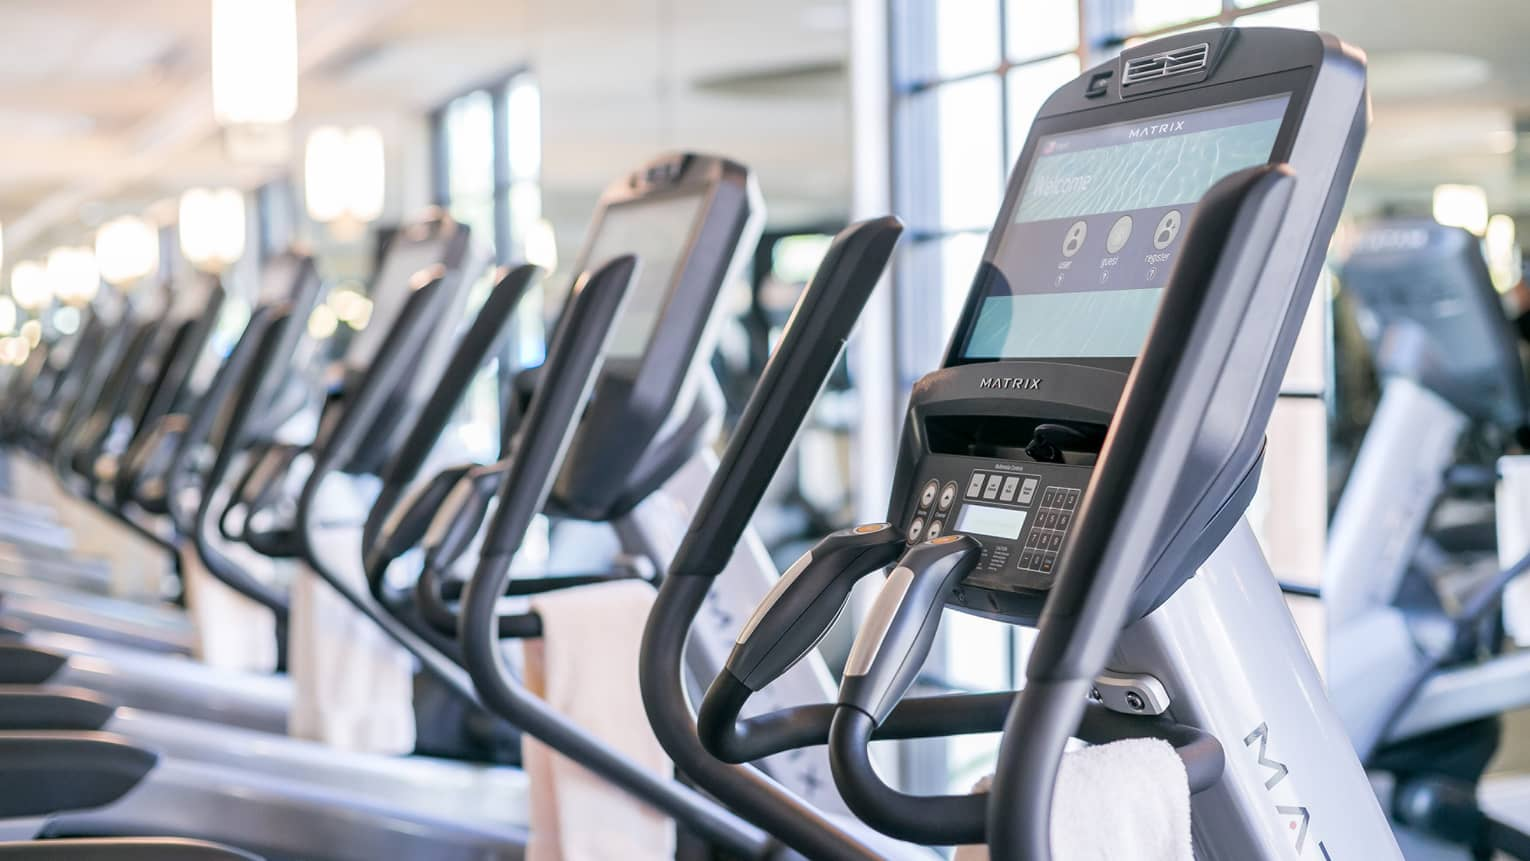 Close-up of cardio elliptical machines in a row in fitness facility